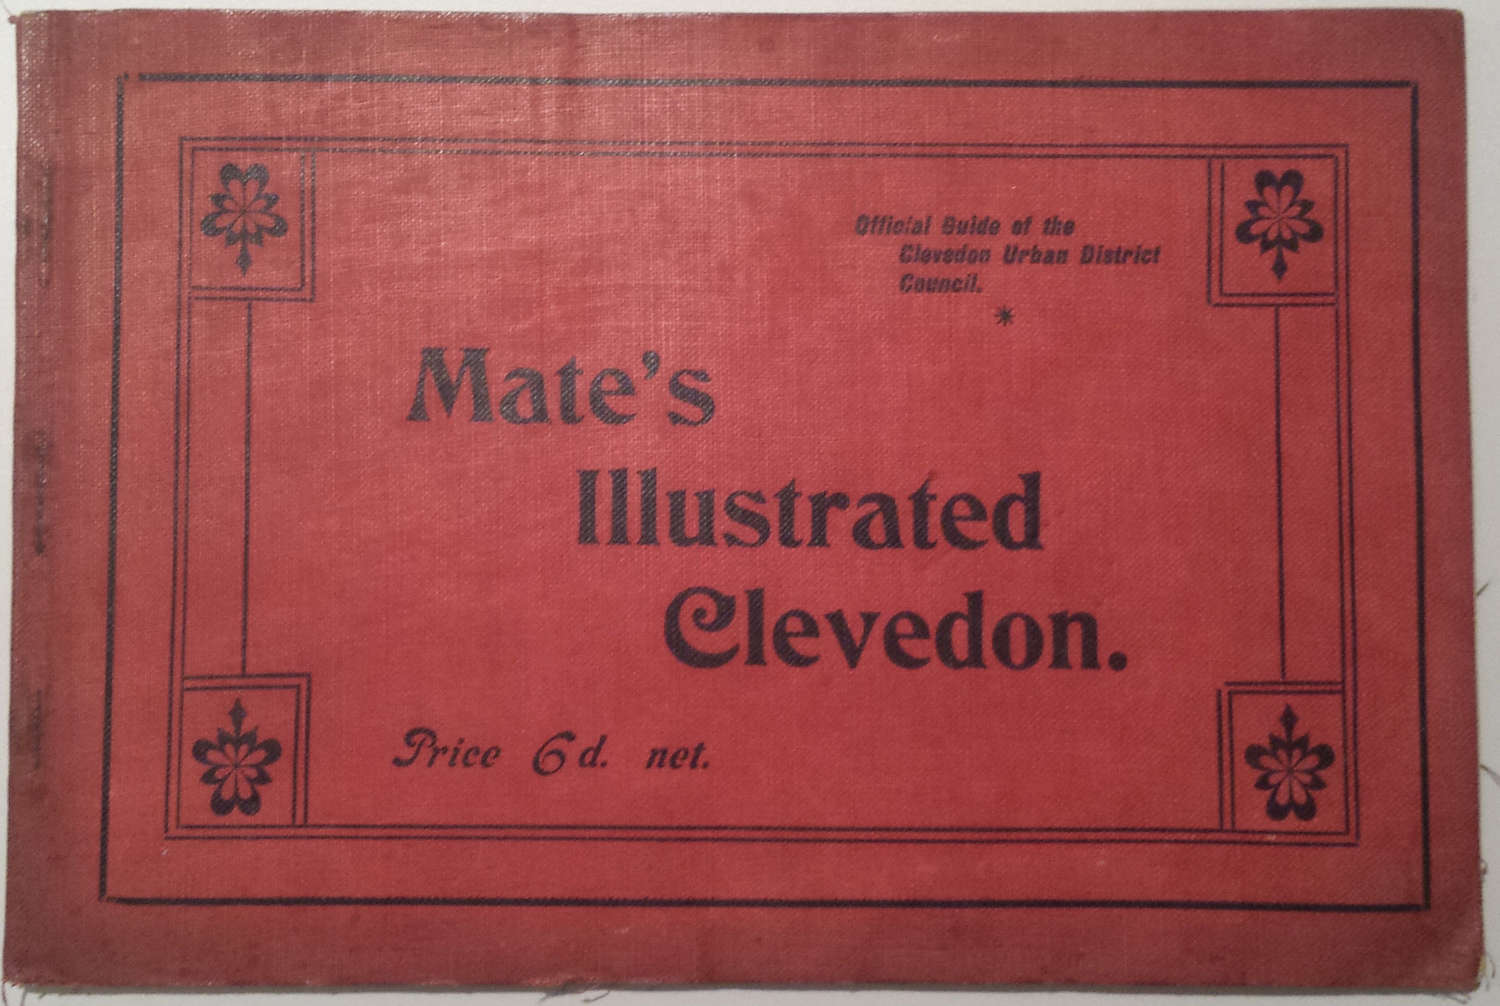 Mate's Illustrated Clevedon